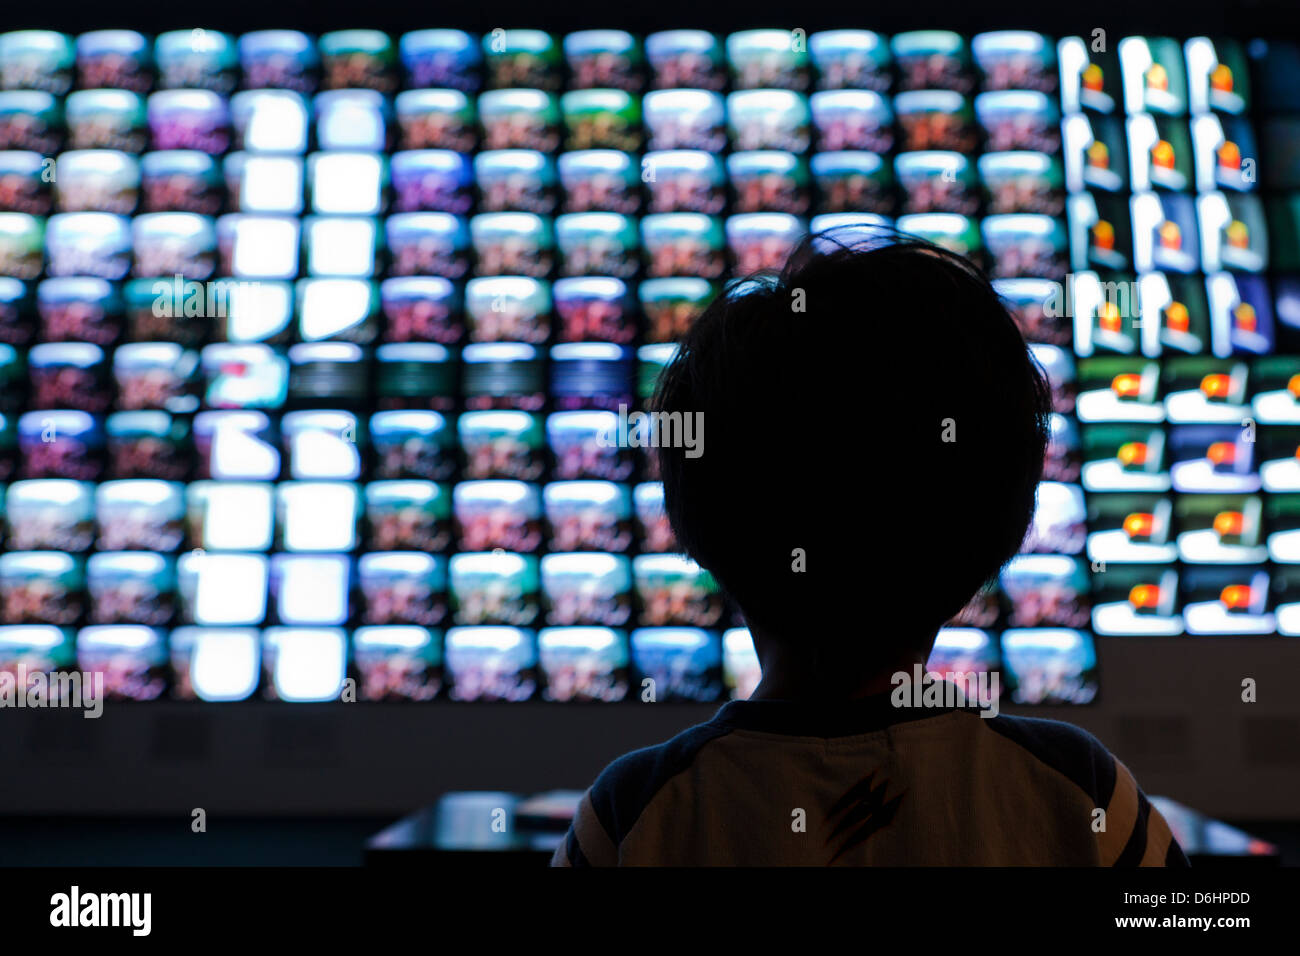 Small boy watching a large video screen - Stock Image